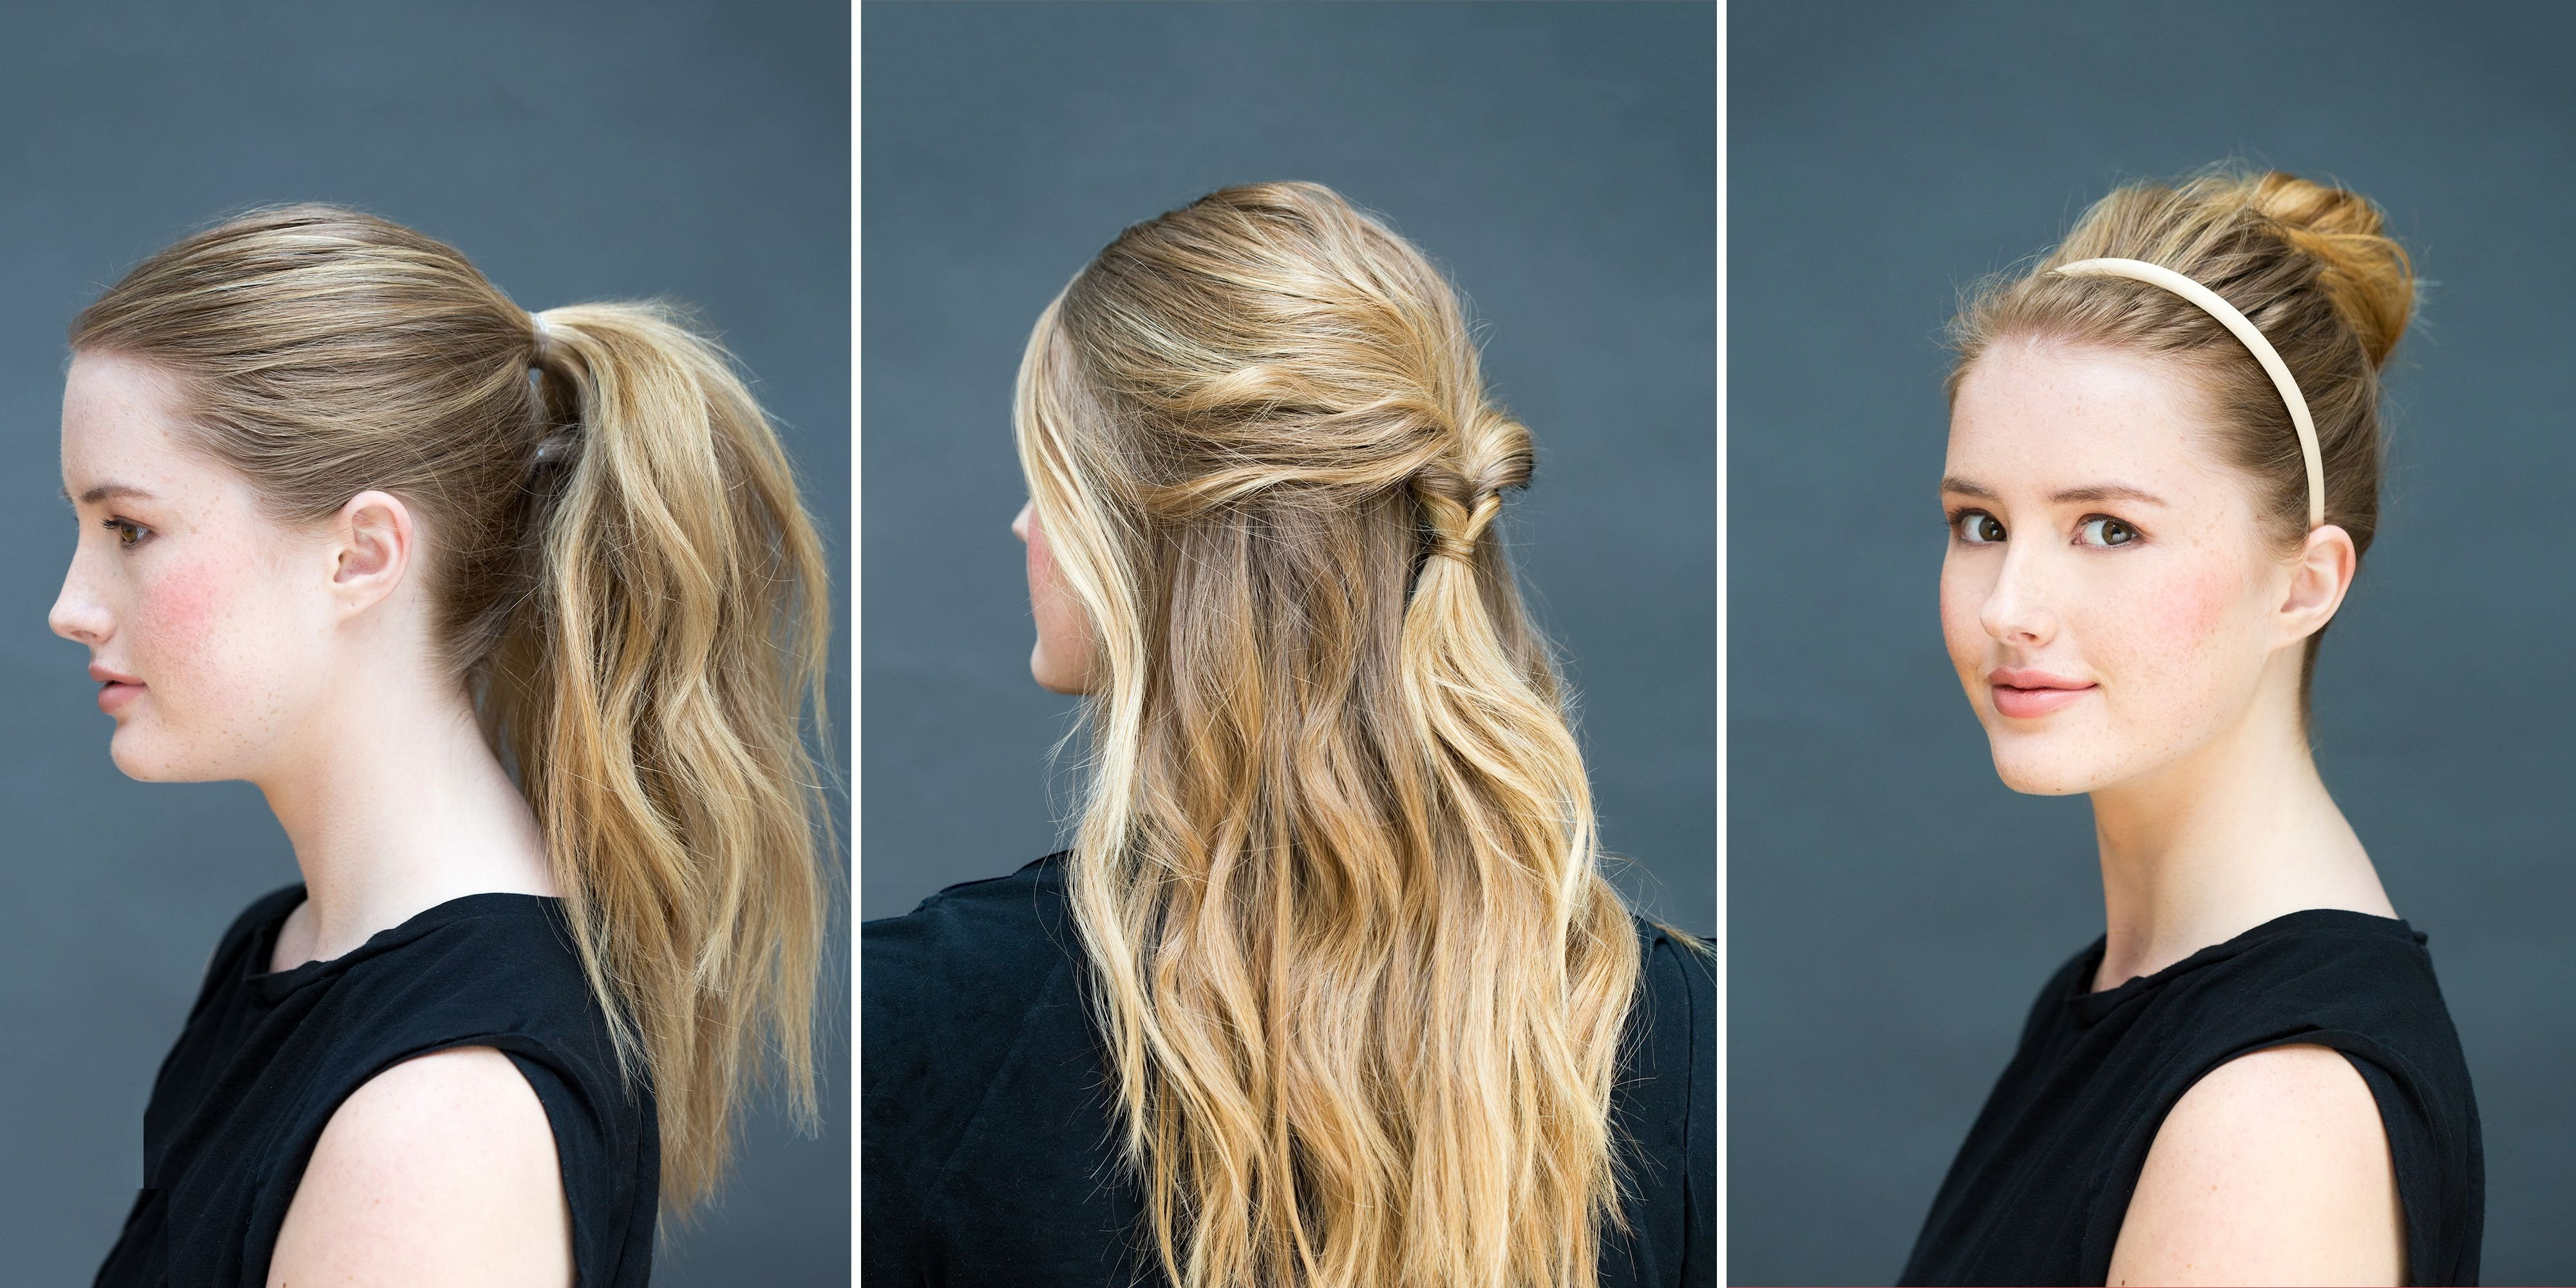 10 Stunning Easy Hair Ideas For Long Hair 10 easy hairstyles you can do in 10 seconds diy hairstyles 1 2021